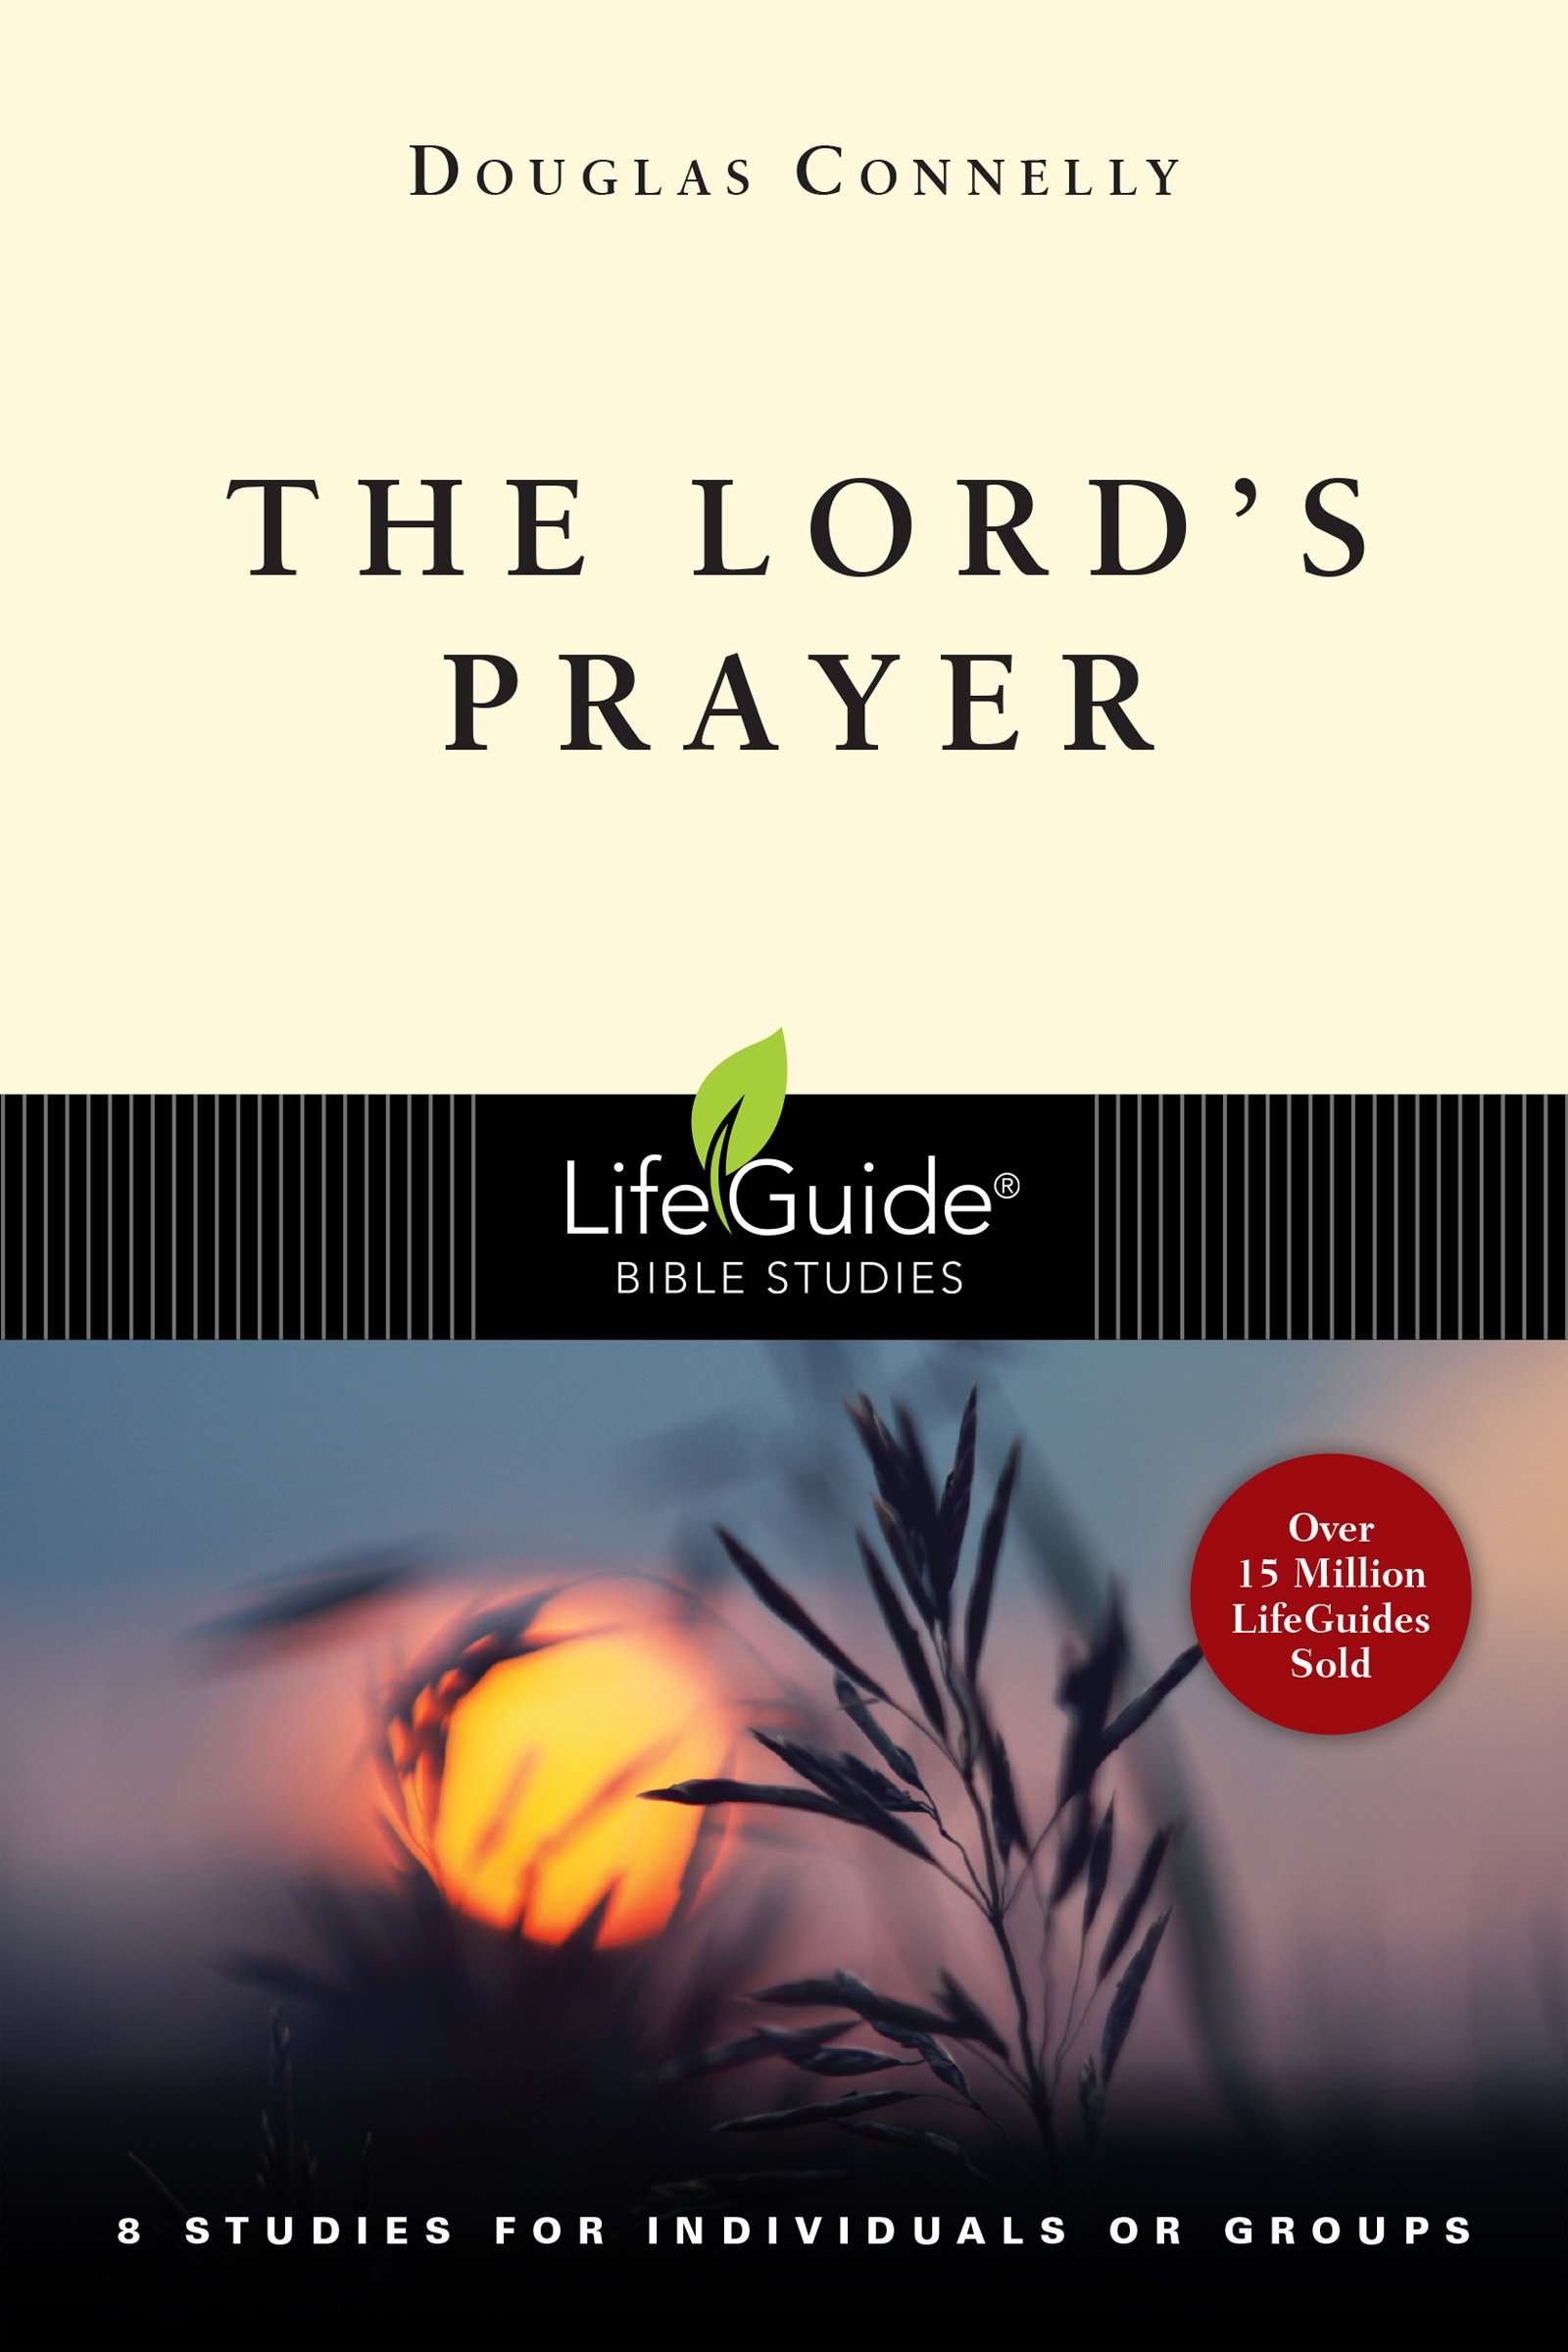 The Lord's Prayer (Lifeguide Bible Studies)